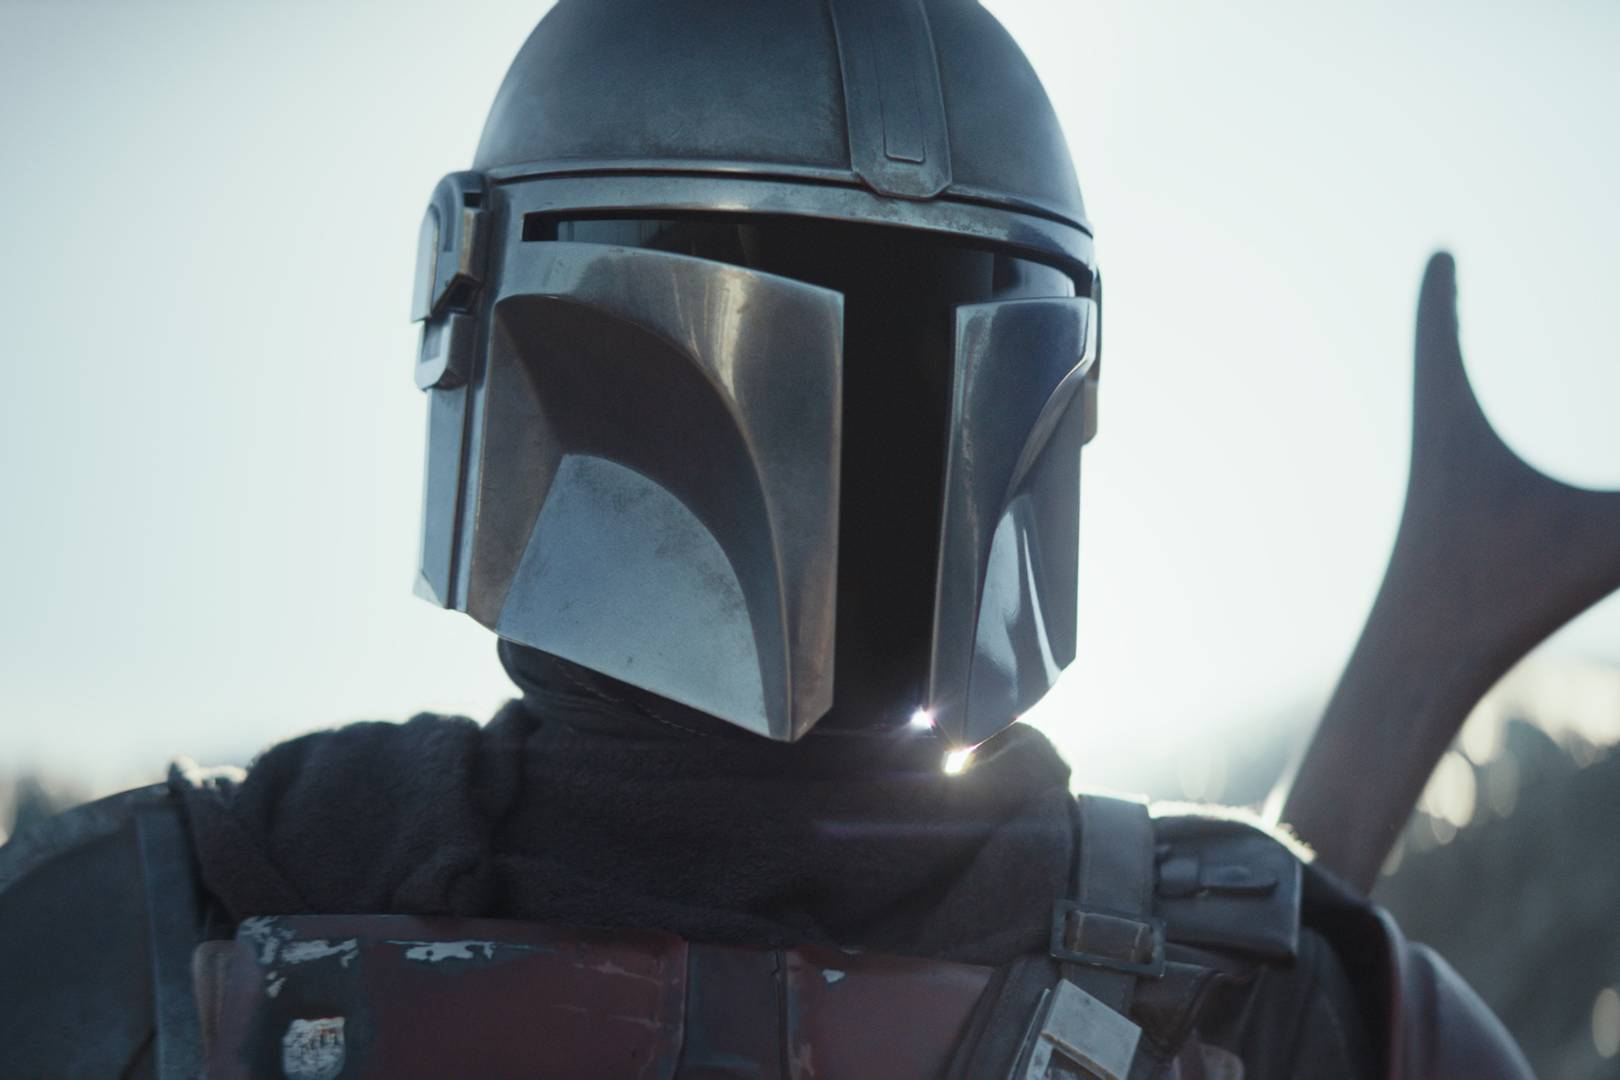 The Mandalorian is set to become the most pirated show of 2019